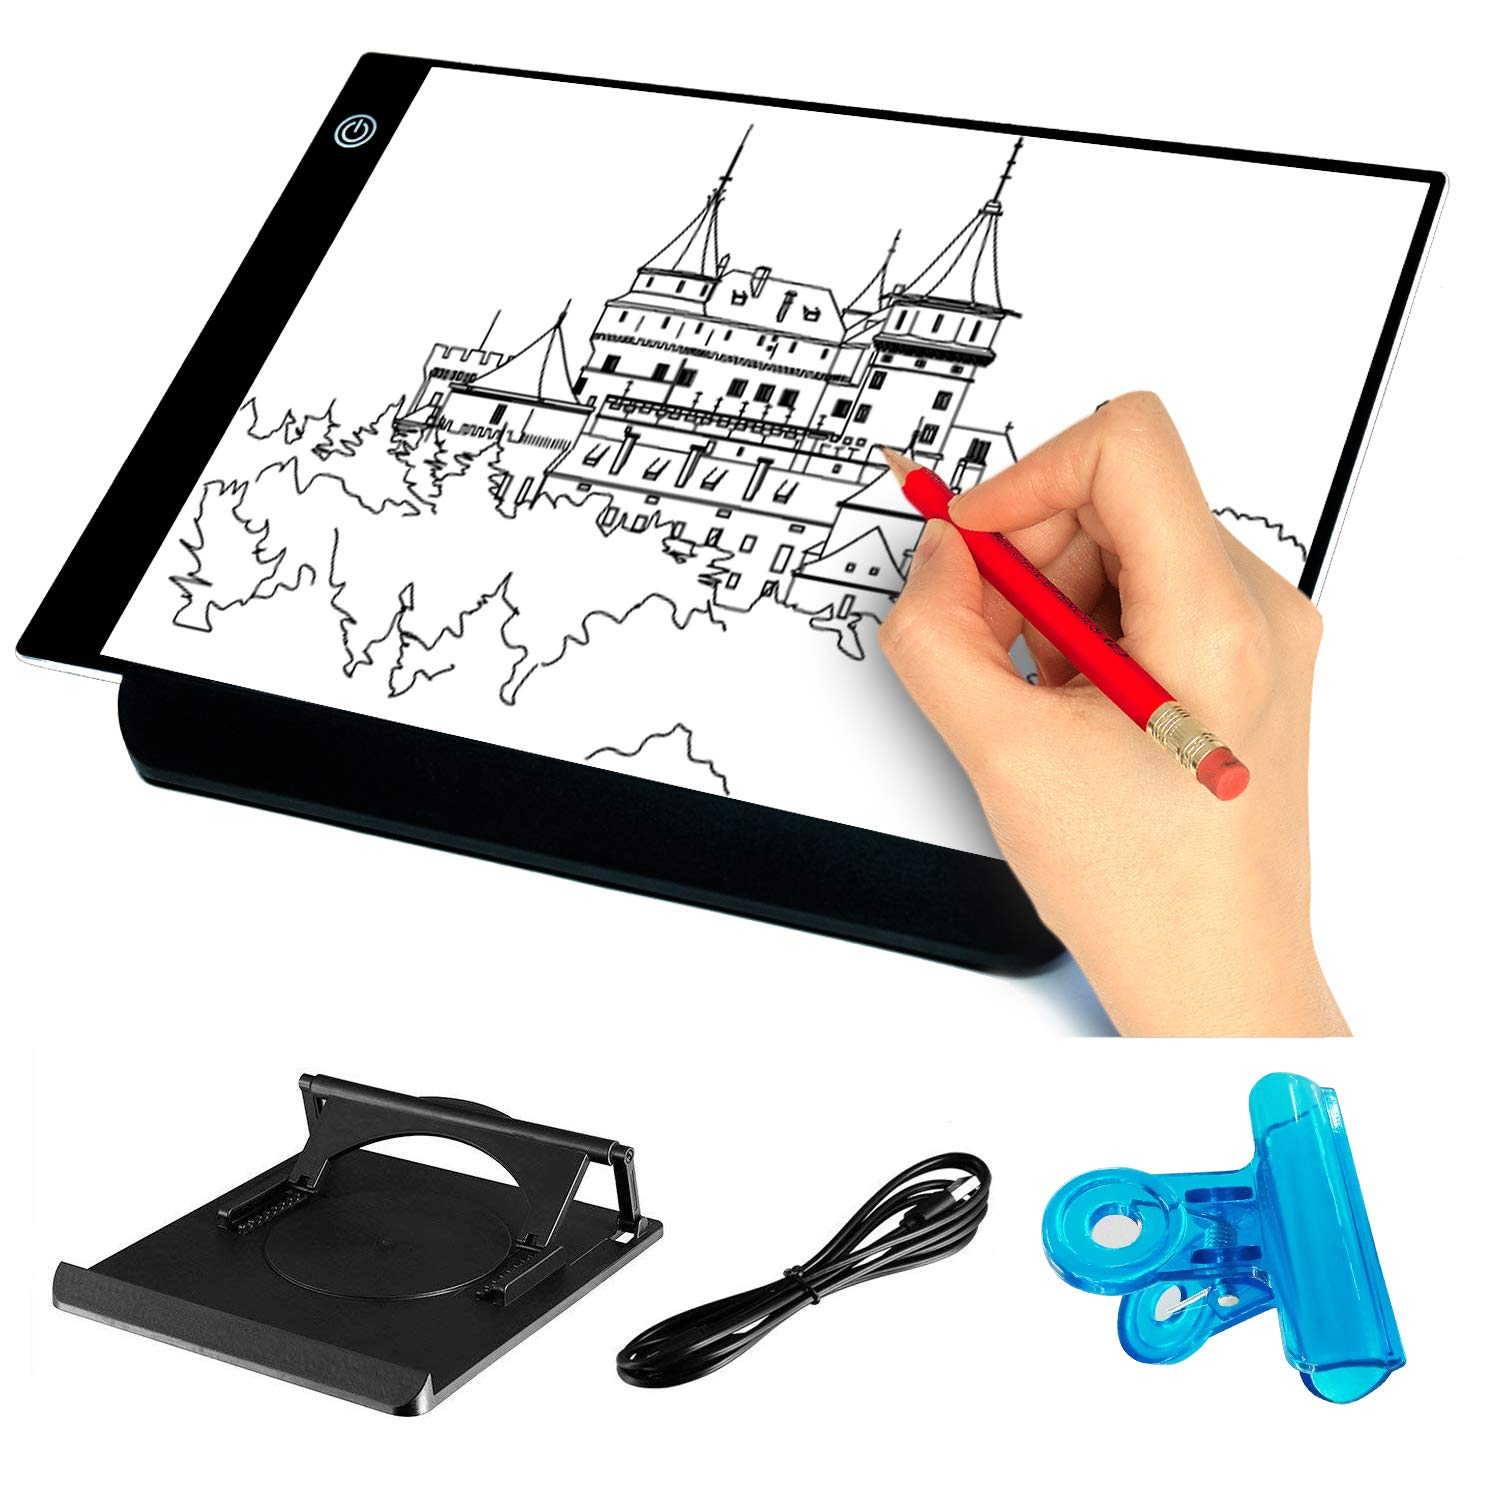 Mucjun A4 Ultra-Thin Light Box Drawing Pad with Stander, USB Power Adjustable Brightness LED Art Tattoo Tracing Light Pad Tracing Paper for Artists Drawing Sketching Animation Designing Stencilling